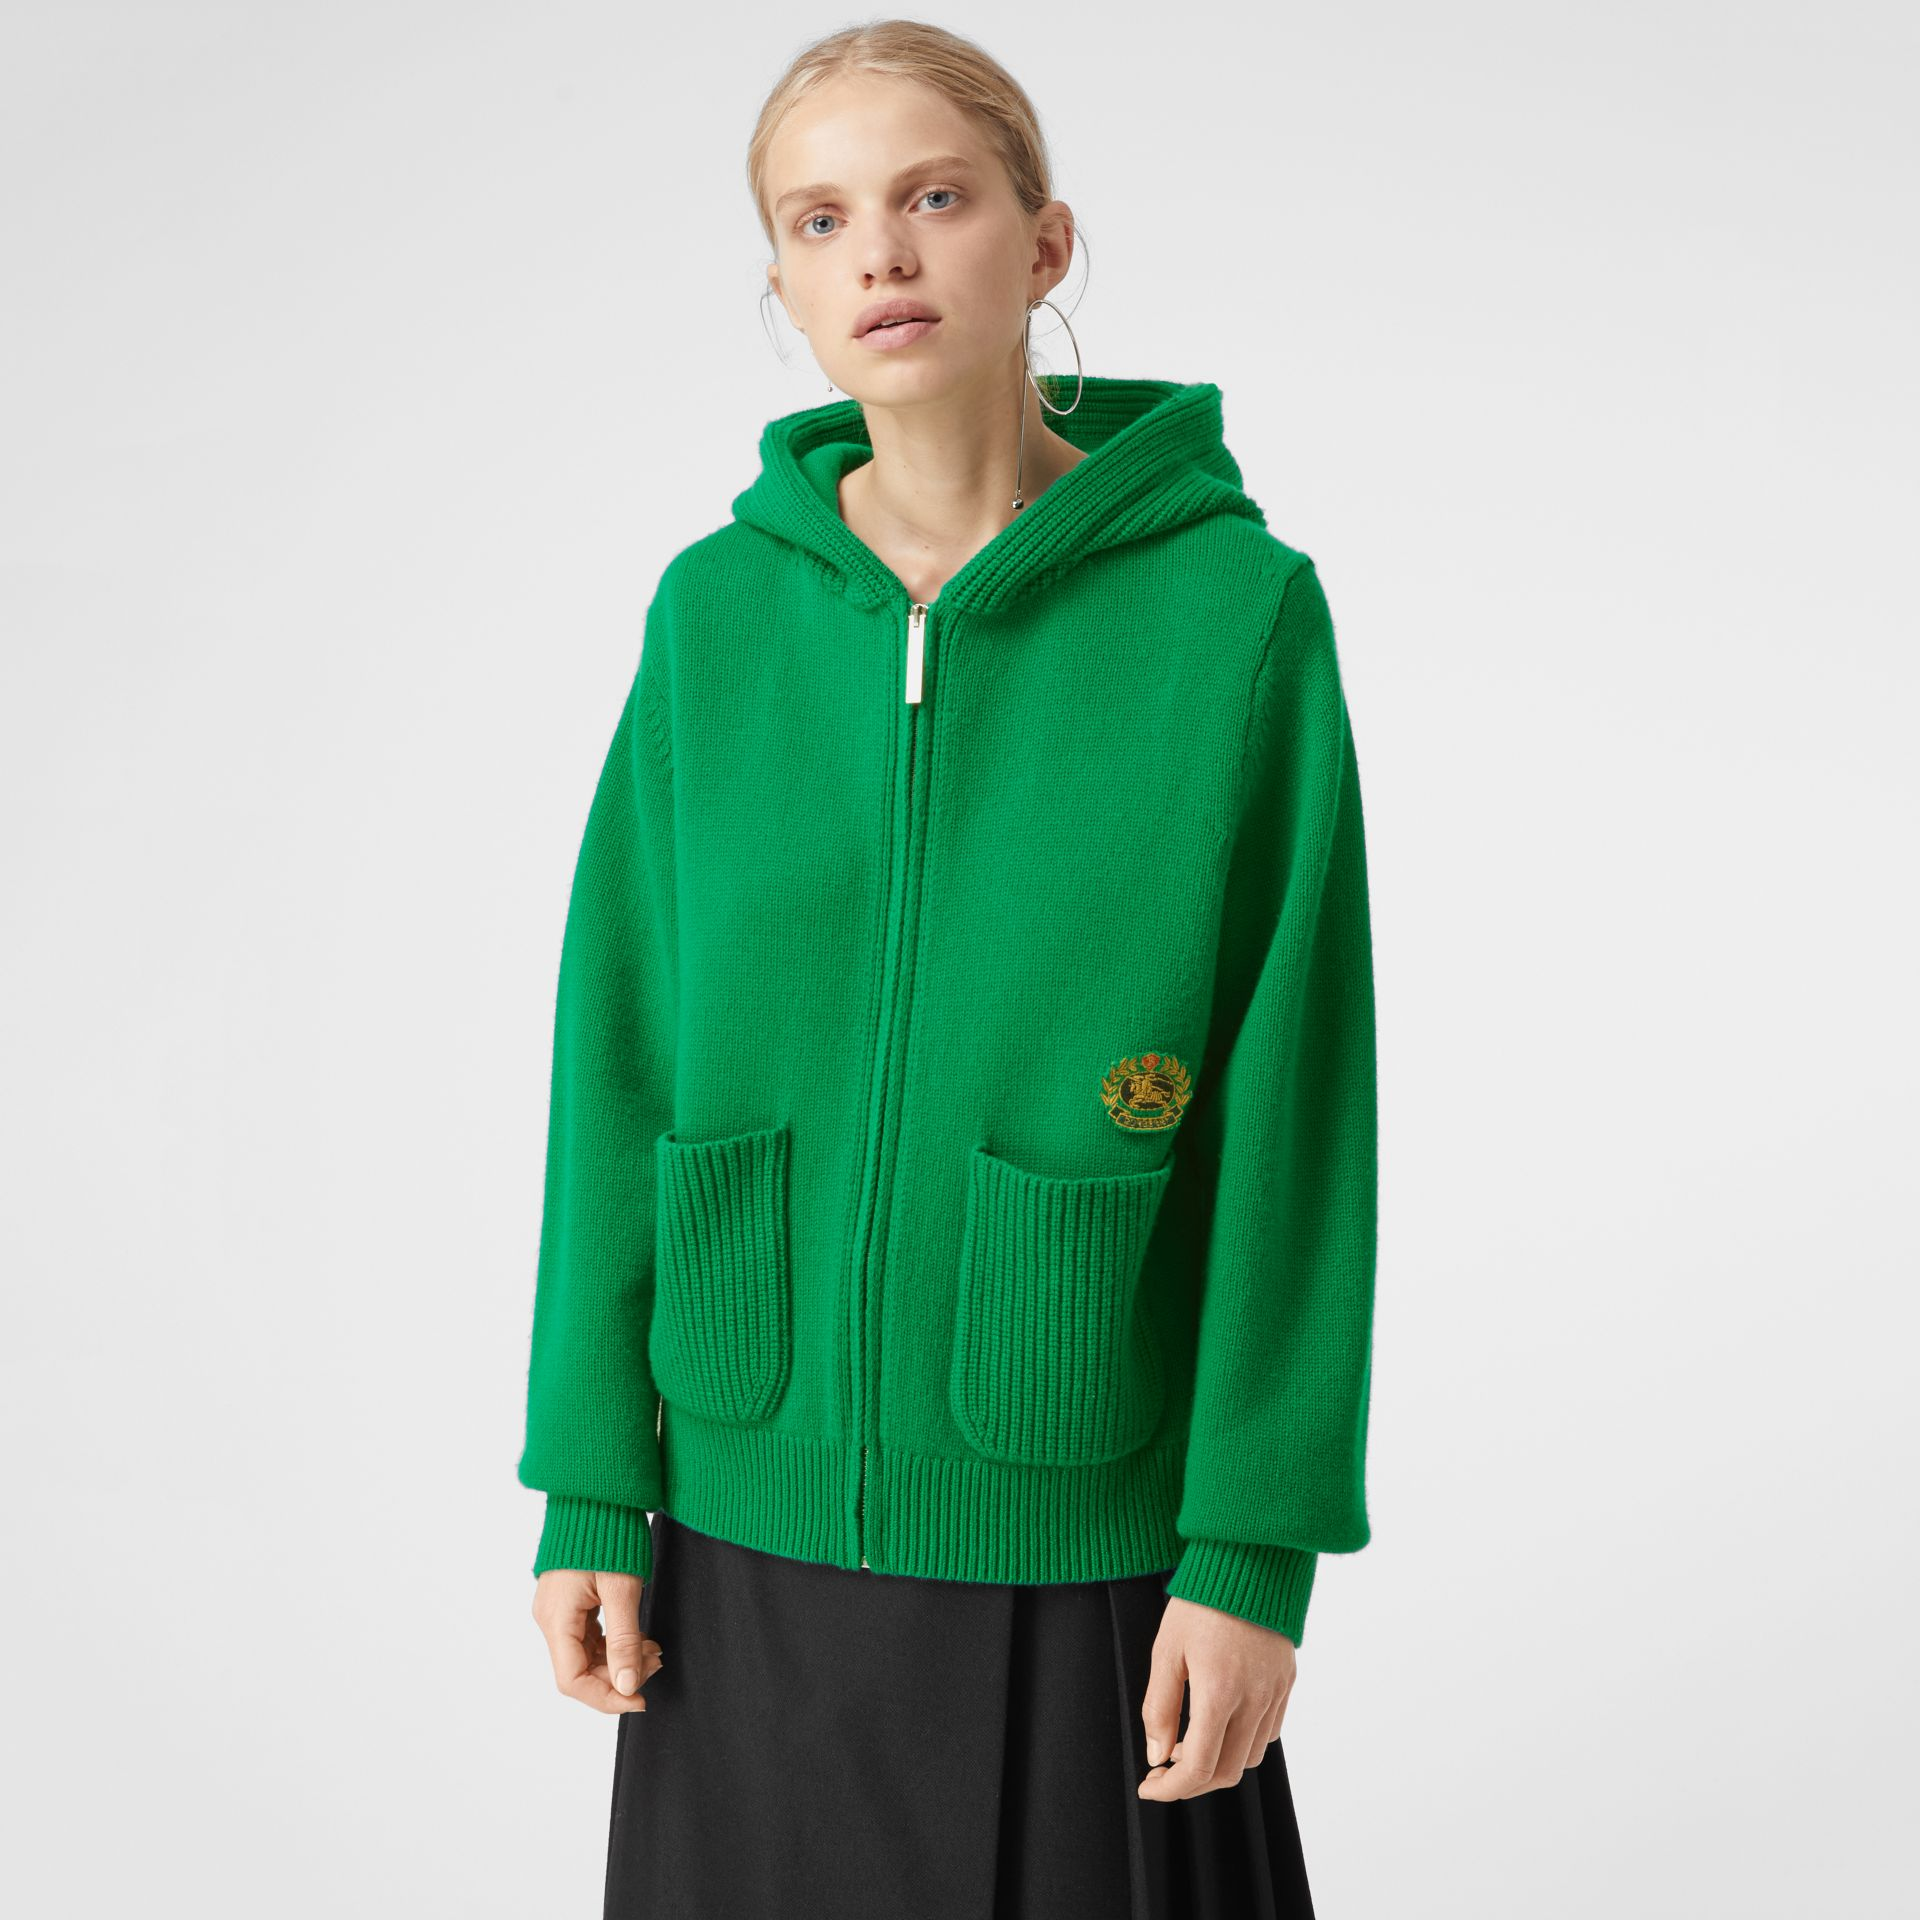 Embroidered Crest Cashmere Hooded Top in Vibrant Green - Women | Burberry - gallery image 4